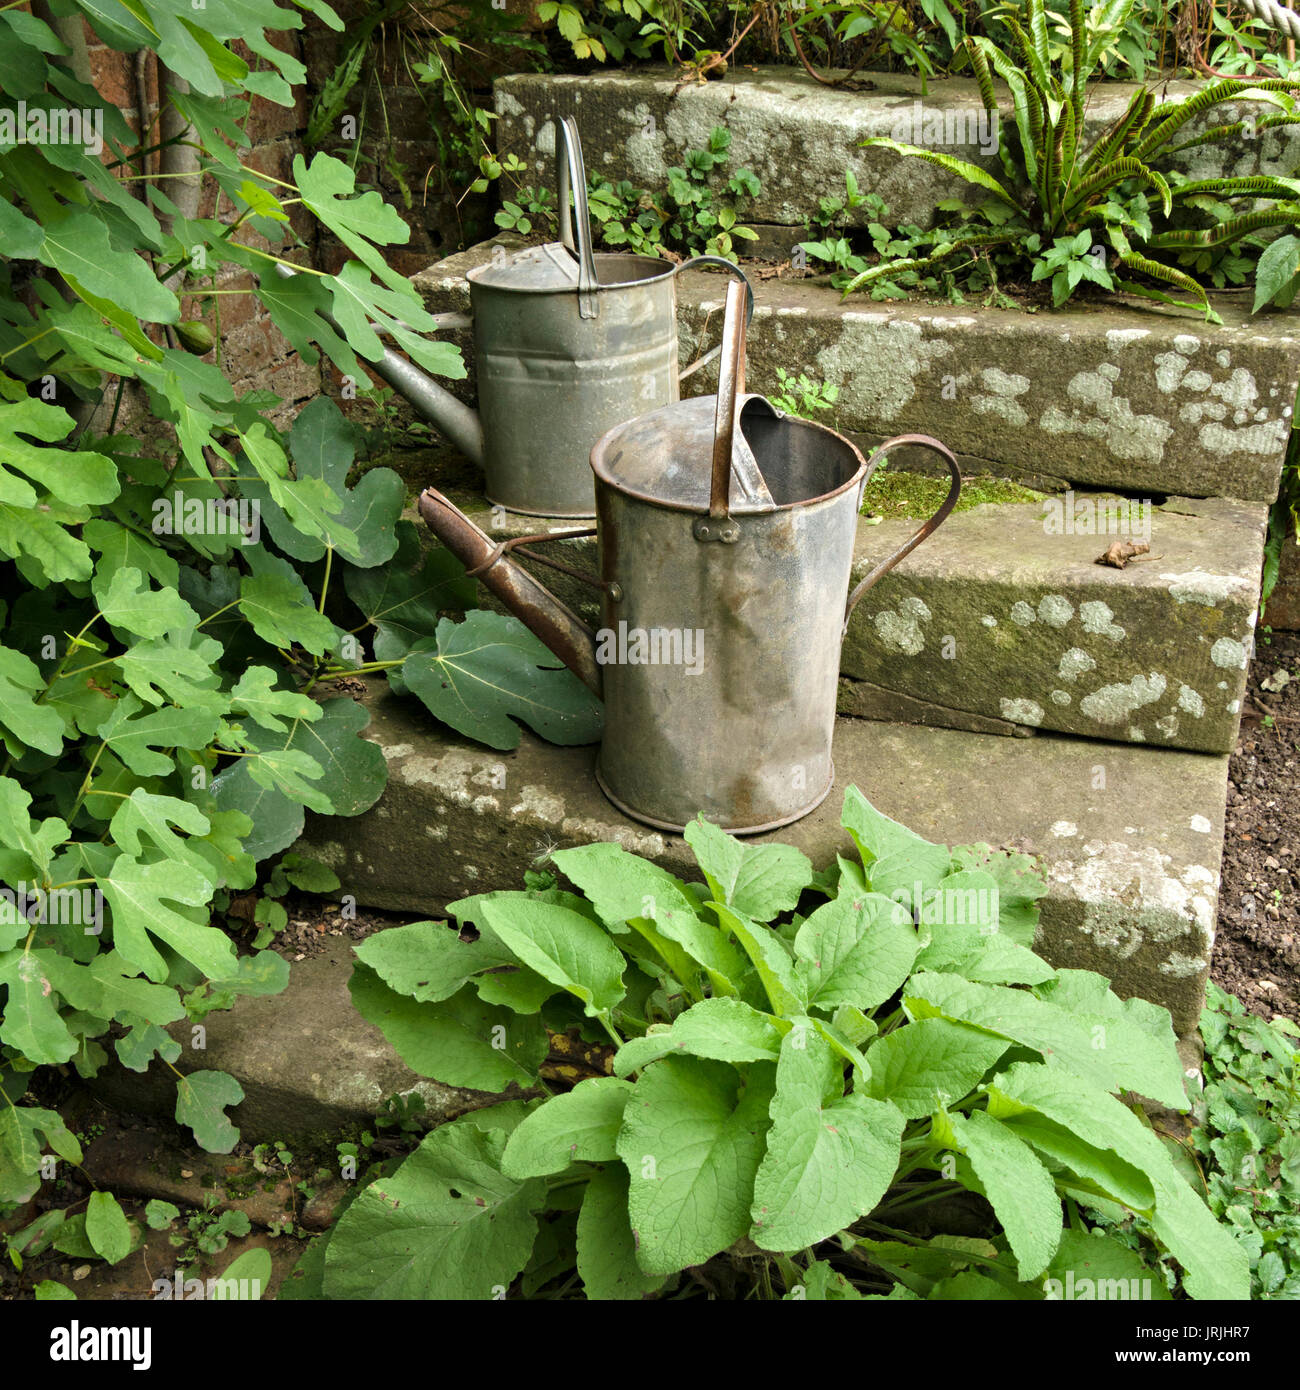 Two old galvanised steel metal garden watering cans on stone steps with green plant foliage, UK - Stock Image